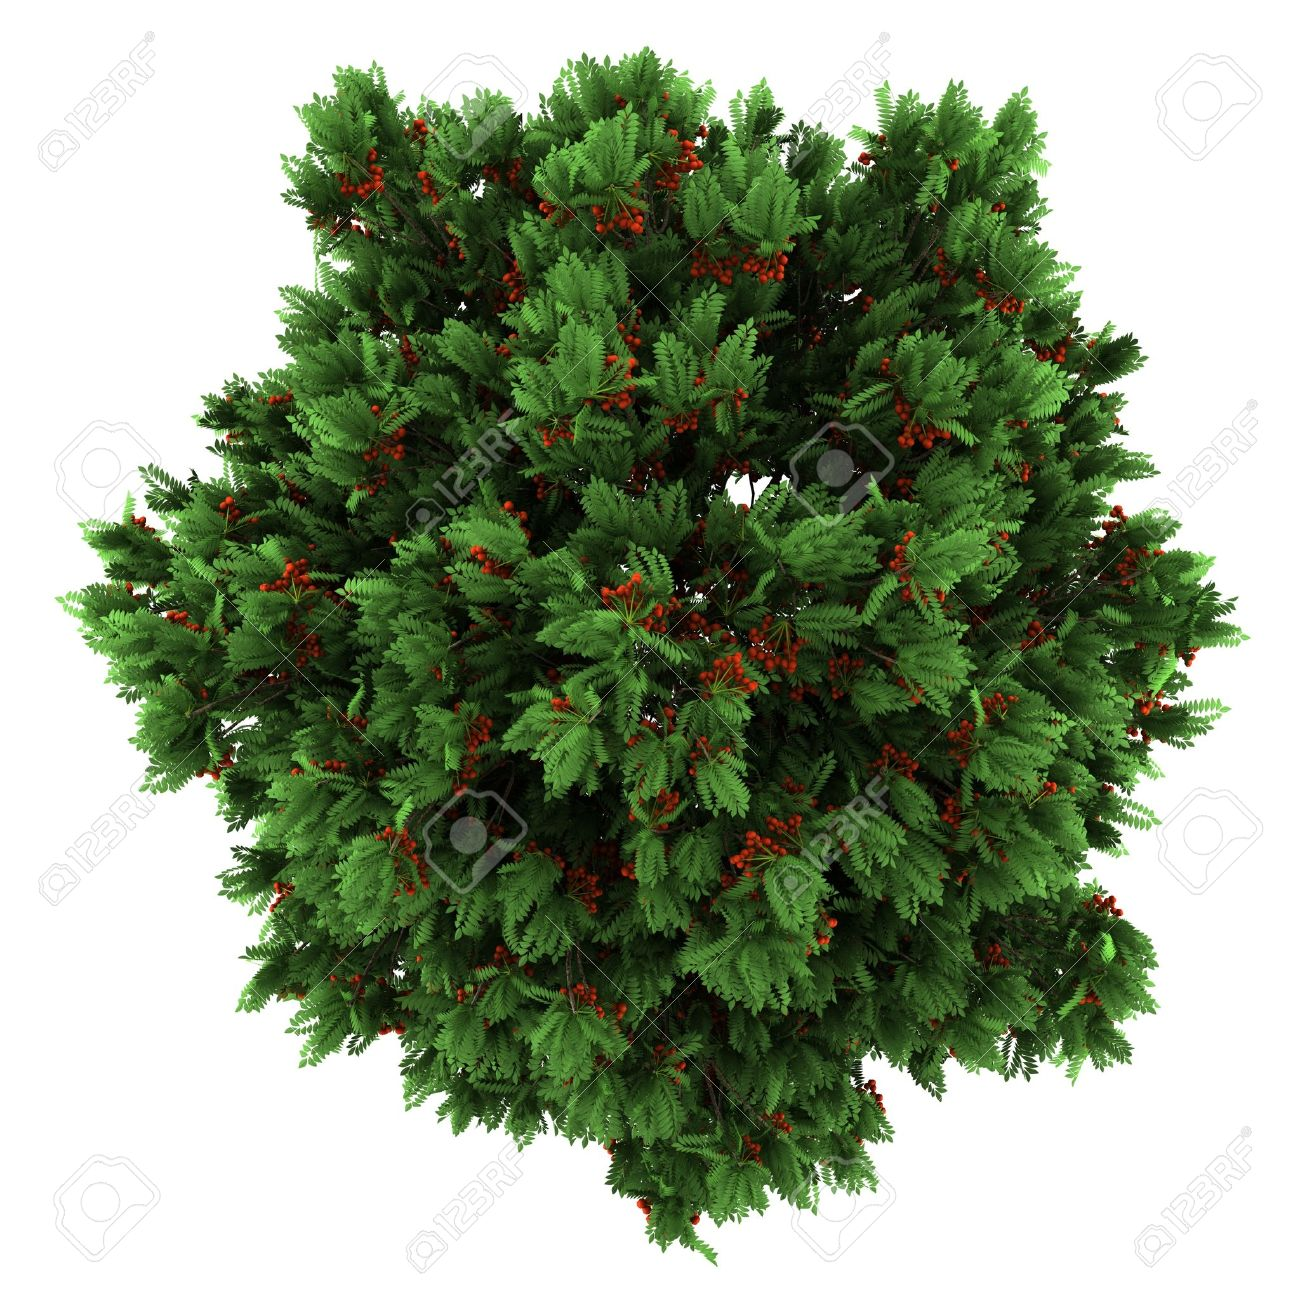 Top View Of European Rowan Tree Isolated On White Background Stock Photo -  15150101 - Tree PNG Top View